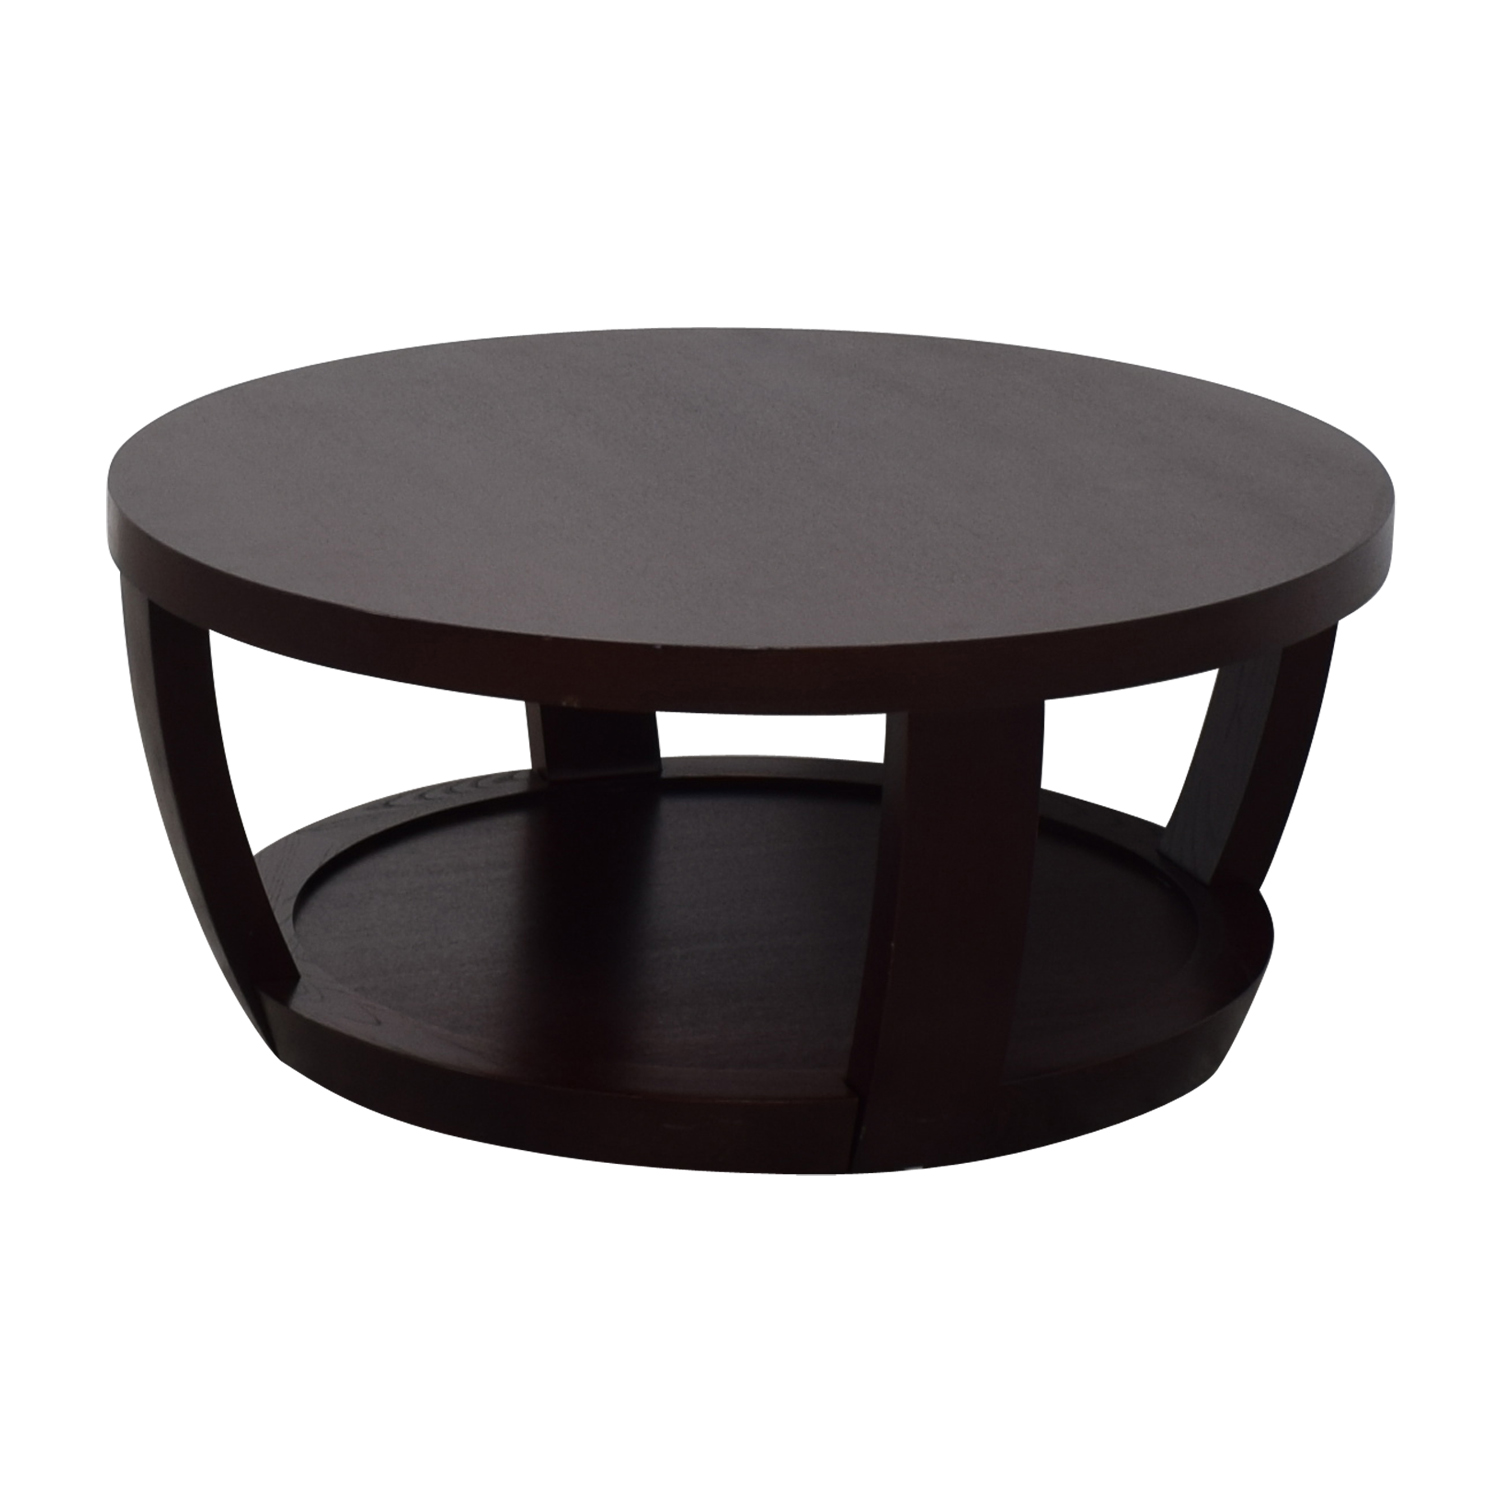 Macy S Marble Top Coffee Table: Macy's Macy's Round Wood Coffee Table / Tables